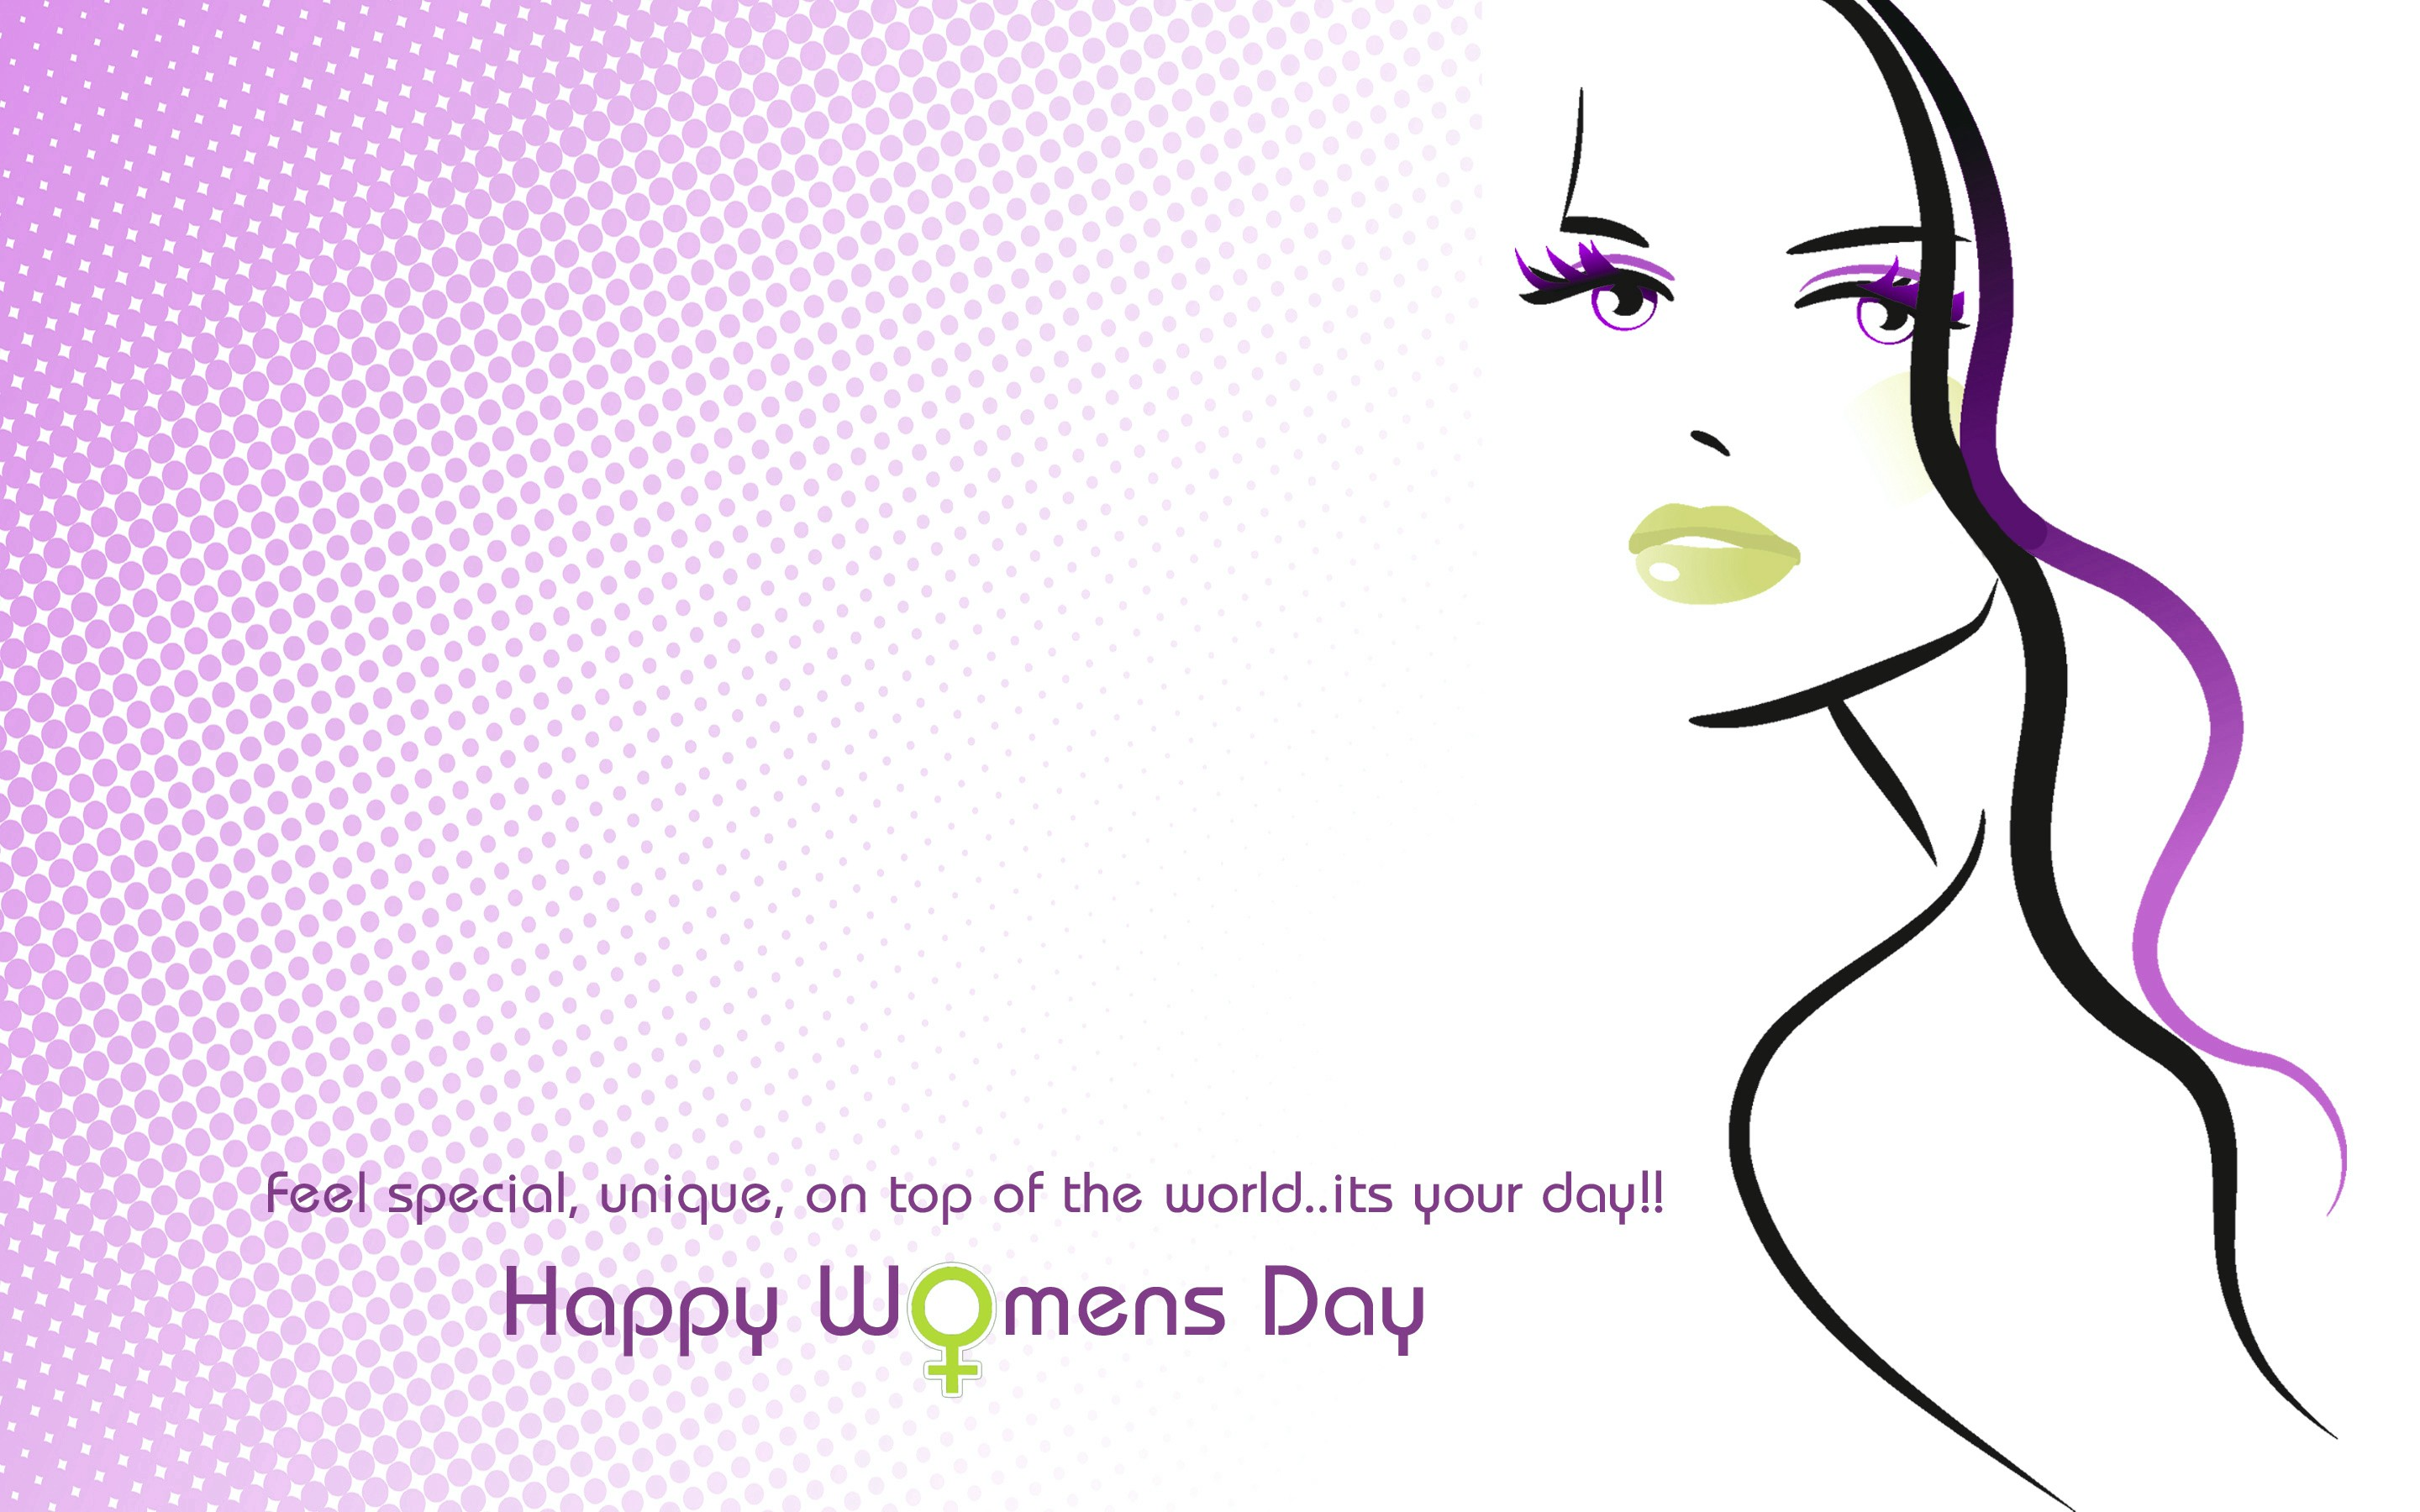 Happy International Women's Day 2018 Quotes - HD Wallpaper